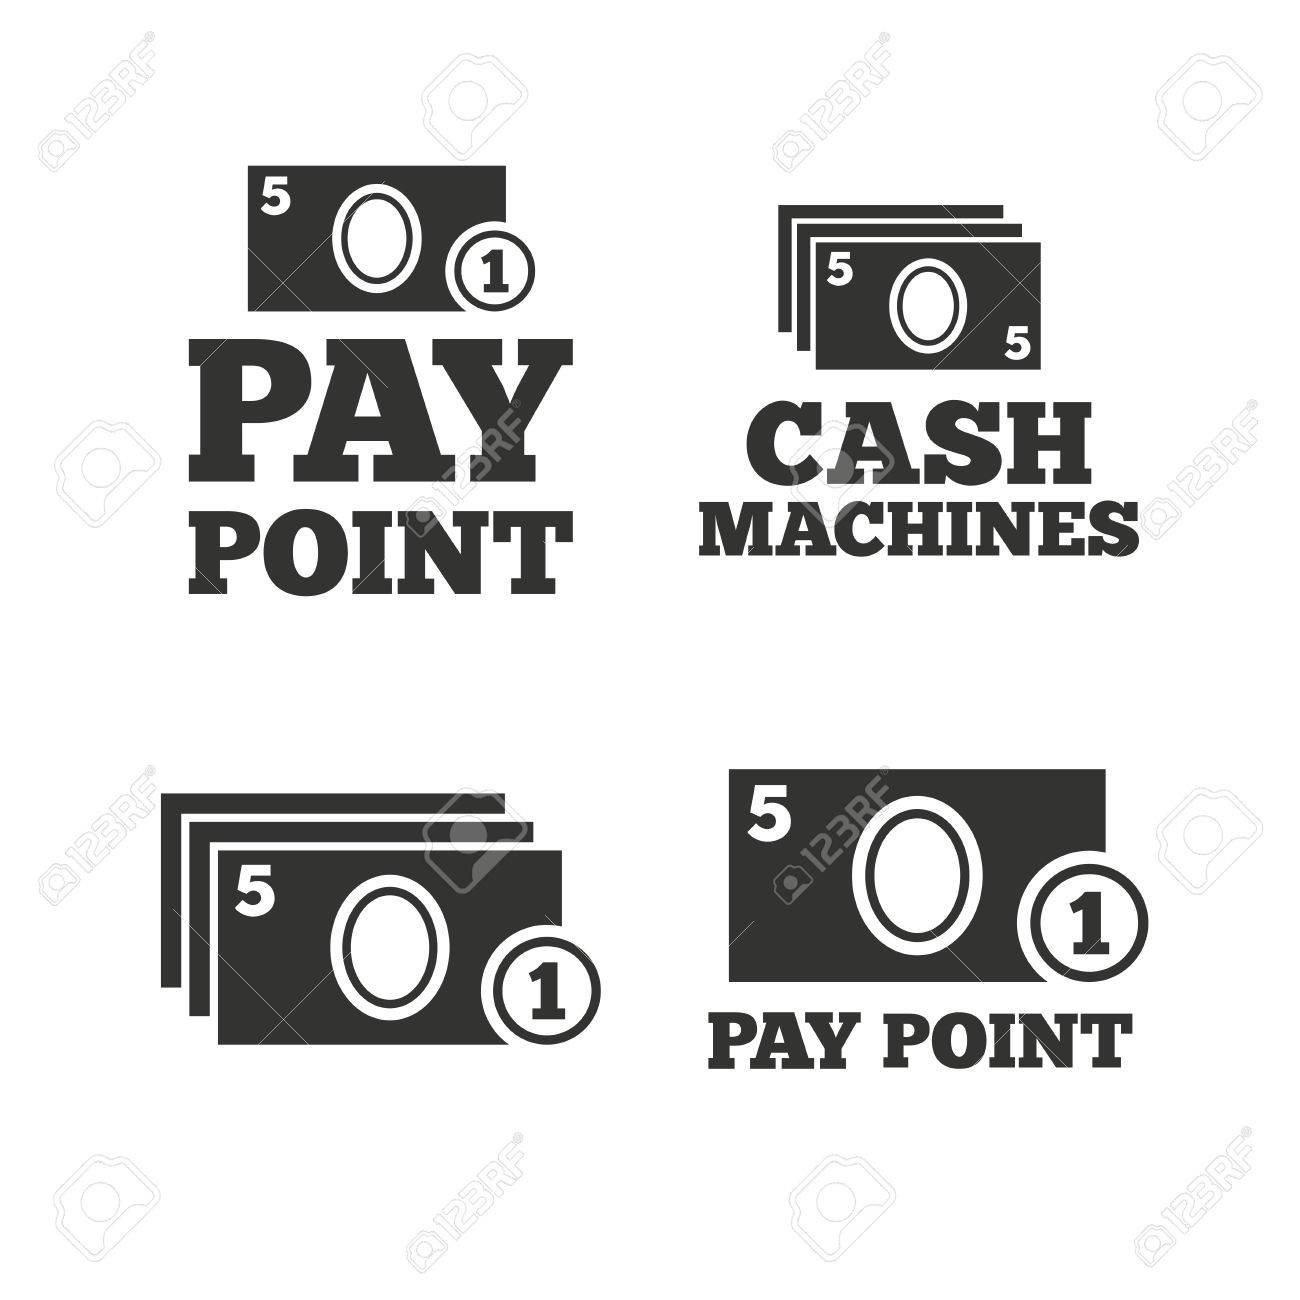 Cash and coin icons  Cash machines or ATM signs  Pay point or